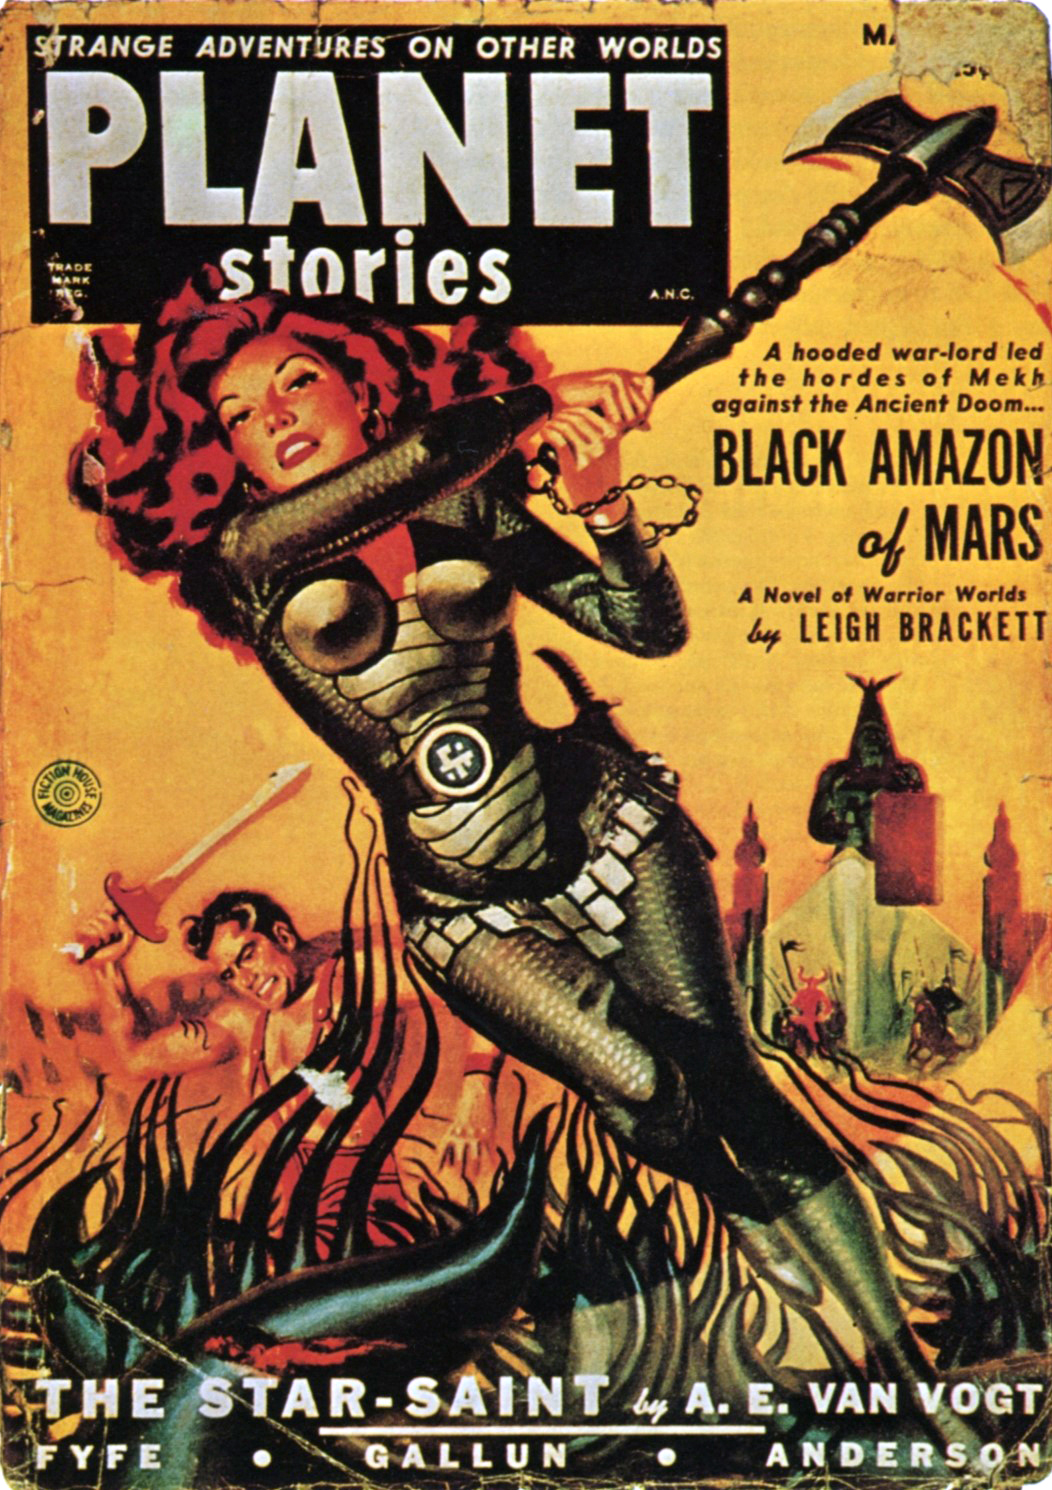 File:Planet Stories March 1951 cover.jpg